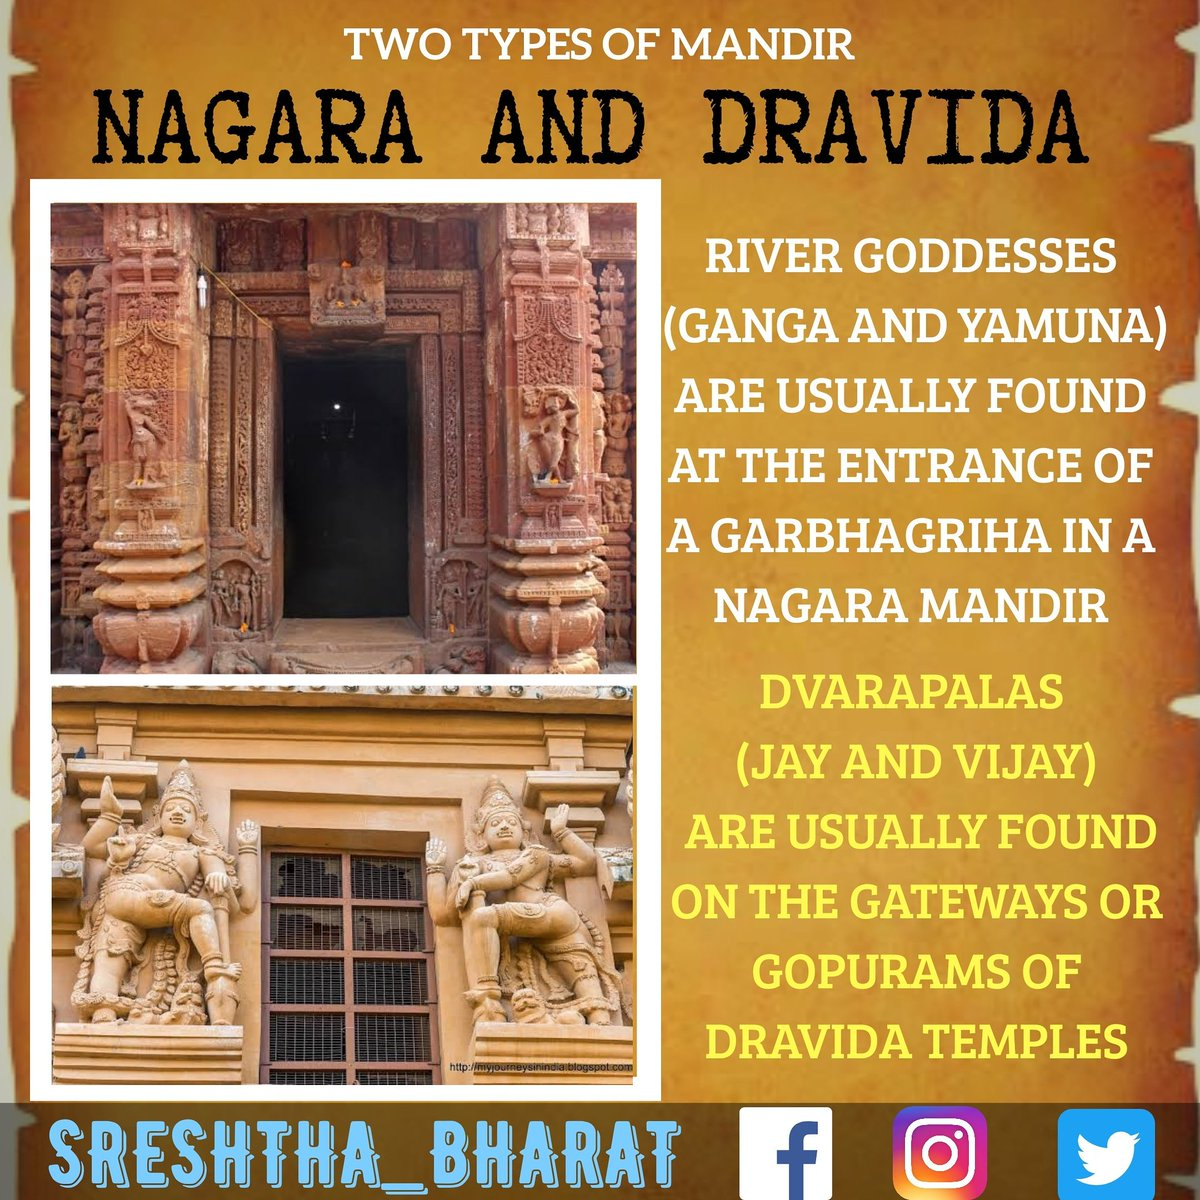 #temple_architecture  We will be getting closer to the Great Temple Architecture of our Sreshtha Bharat  Follow @Sreshthabharat on Facebook | Instagram | Twitter 🙏  #indianculture #indianarchitecture #hinduarchitecture #temple  #worship #templeworship #dravida #mandir #devasthan https://t.co/0xWNgtbzzr